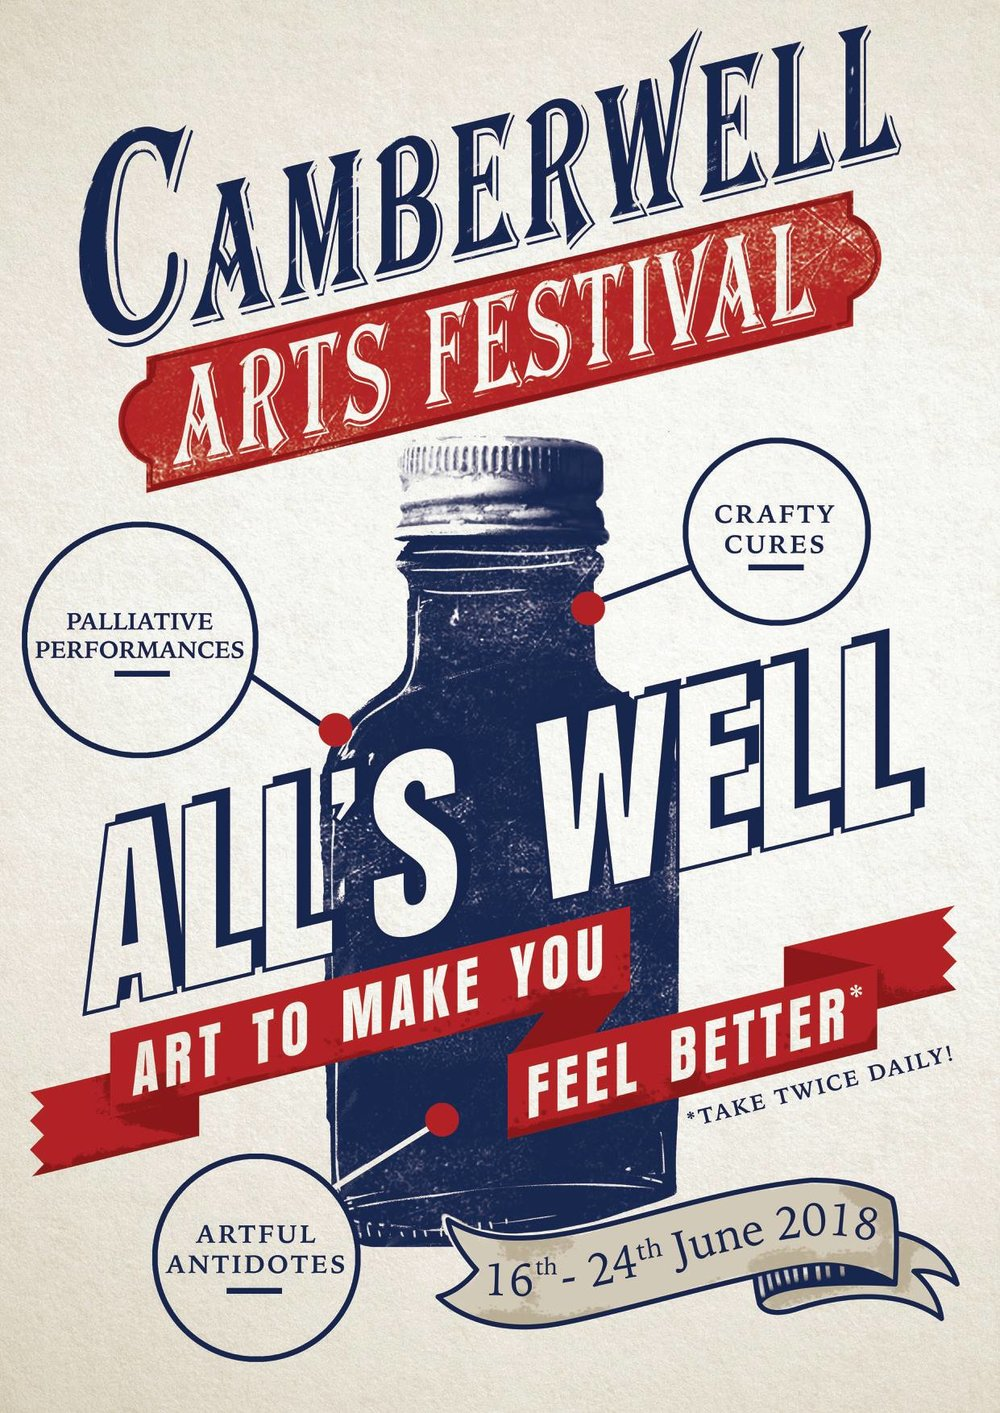 2018 Summer - Camberwell Arts Festival 2018 - All's Well